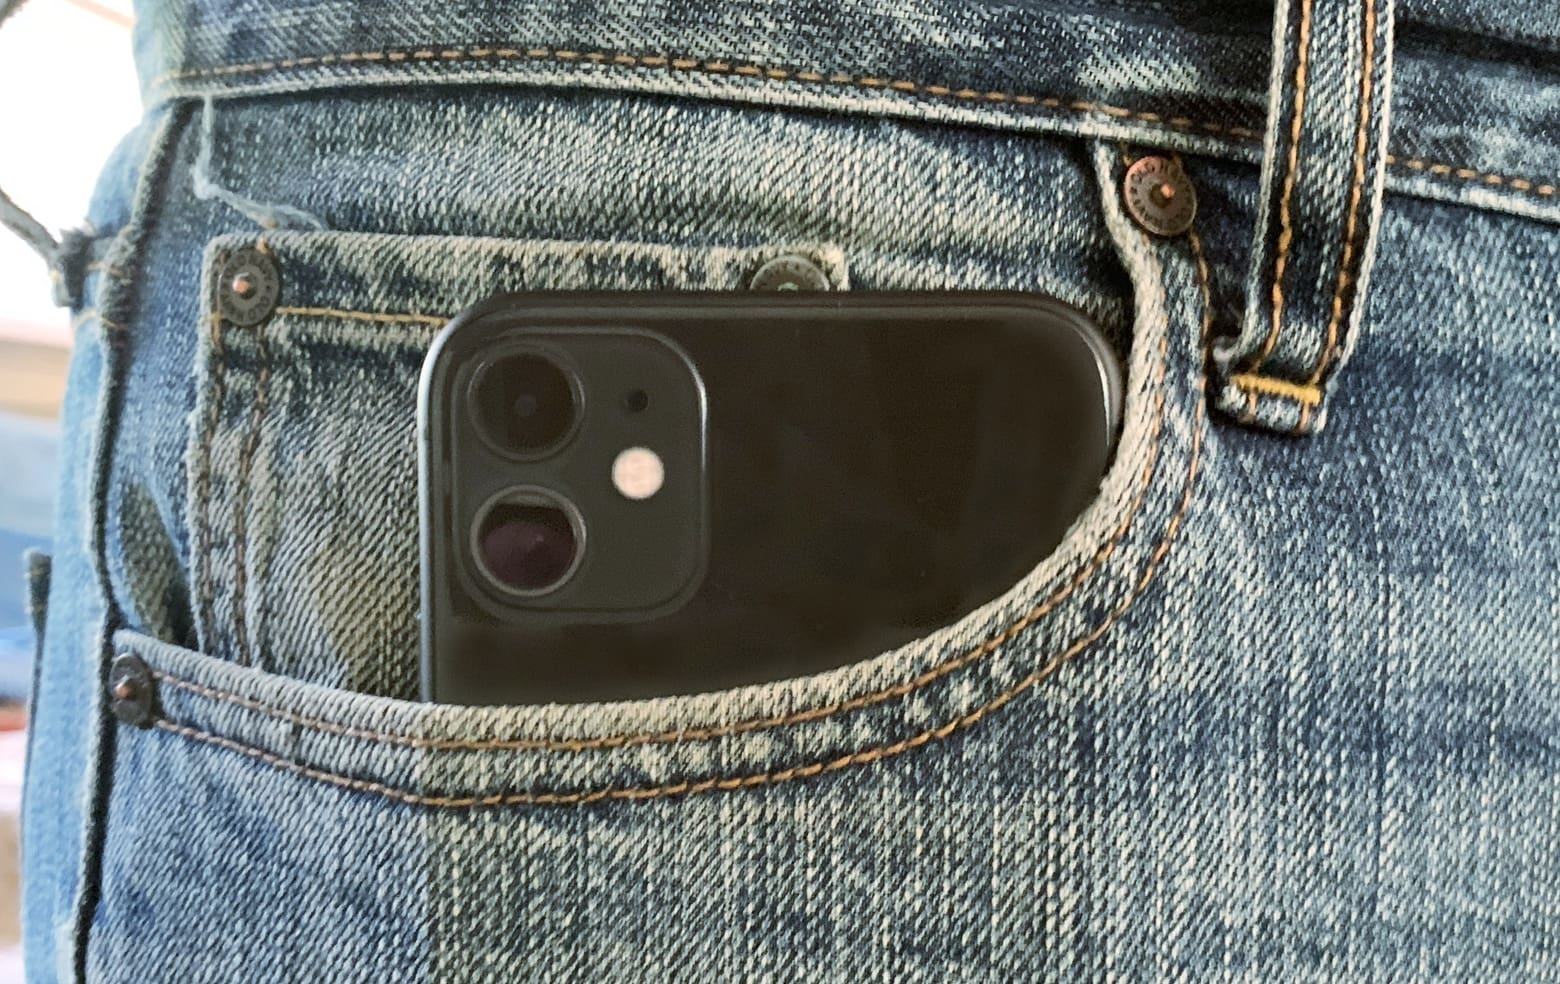 iPhone 11 in a pocket